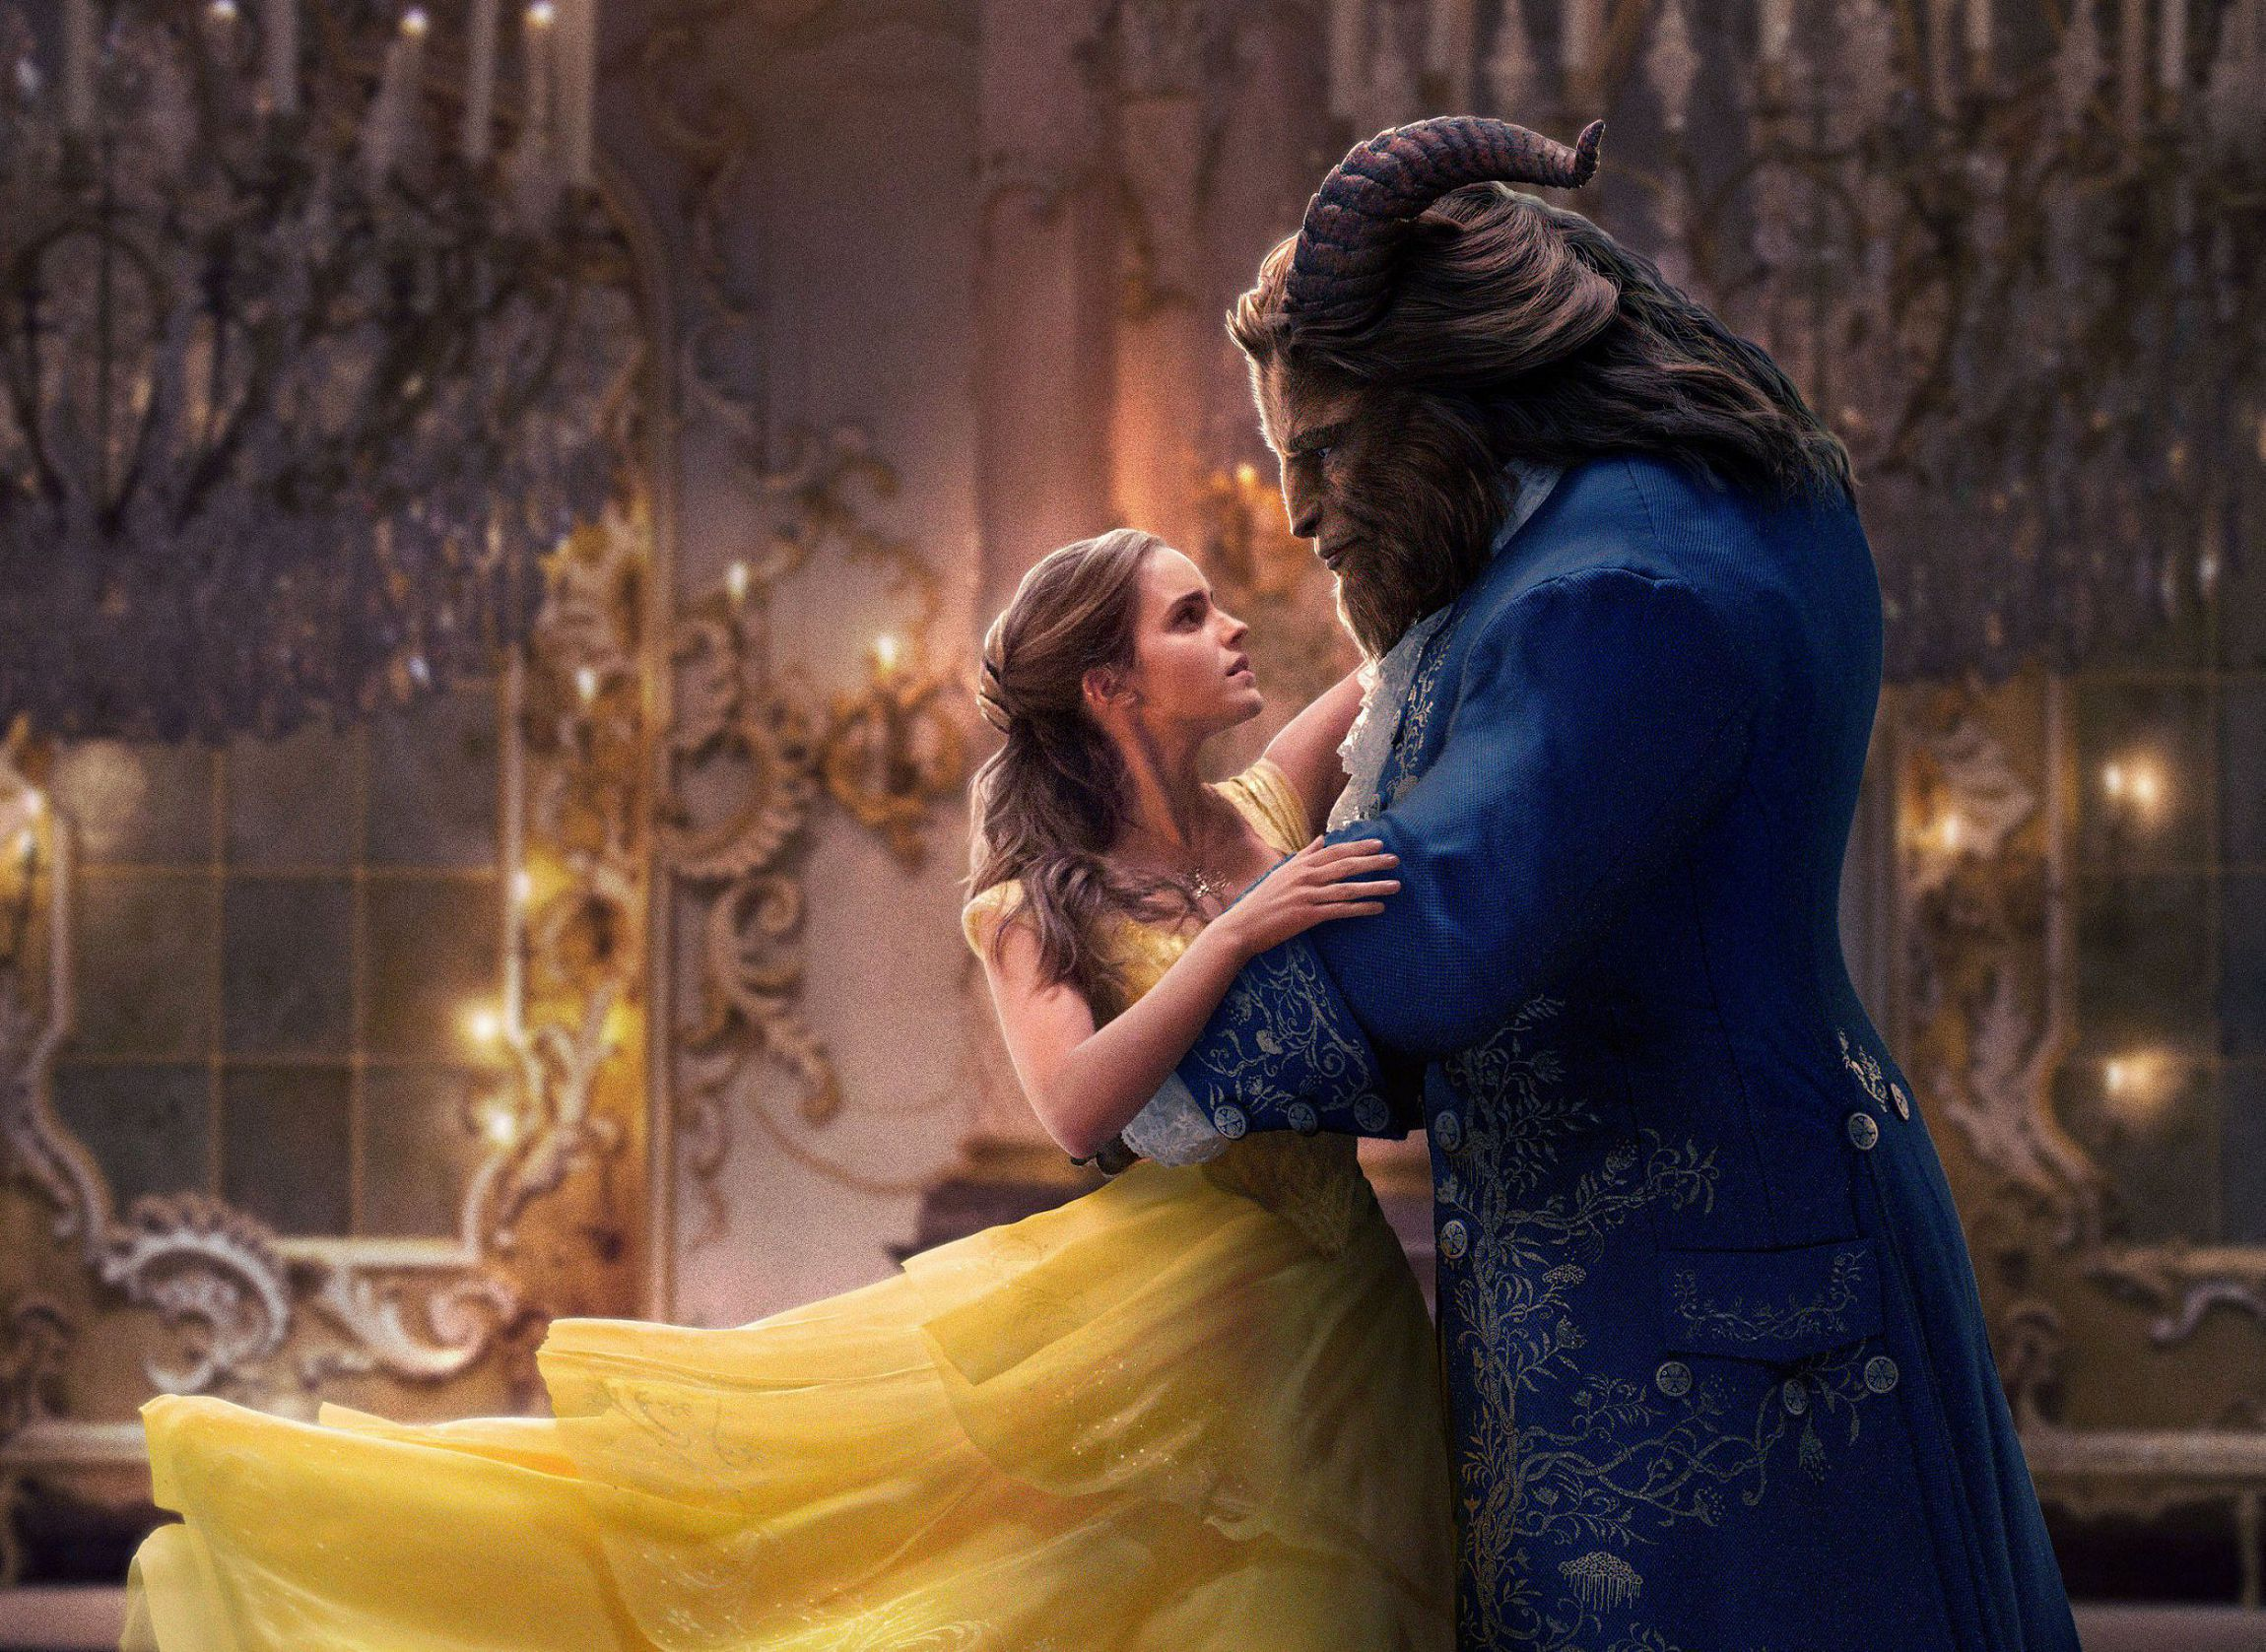 Belle Beauty And The Beast Wallpapers HD